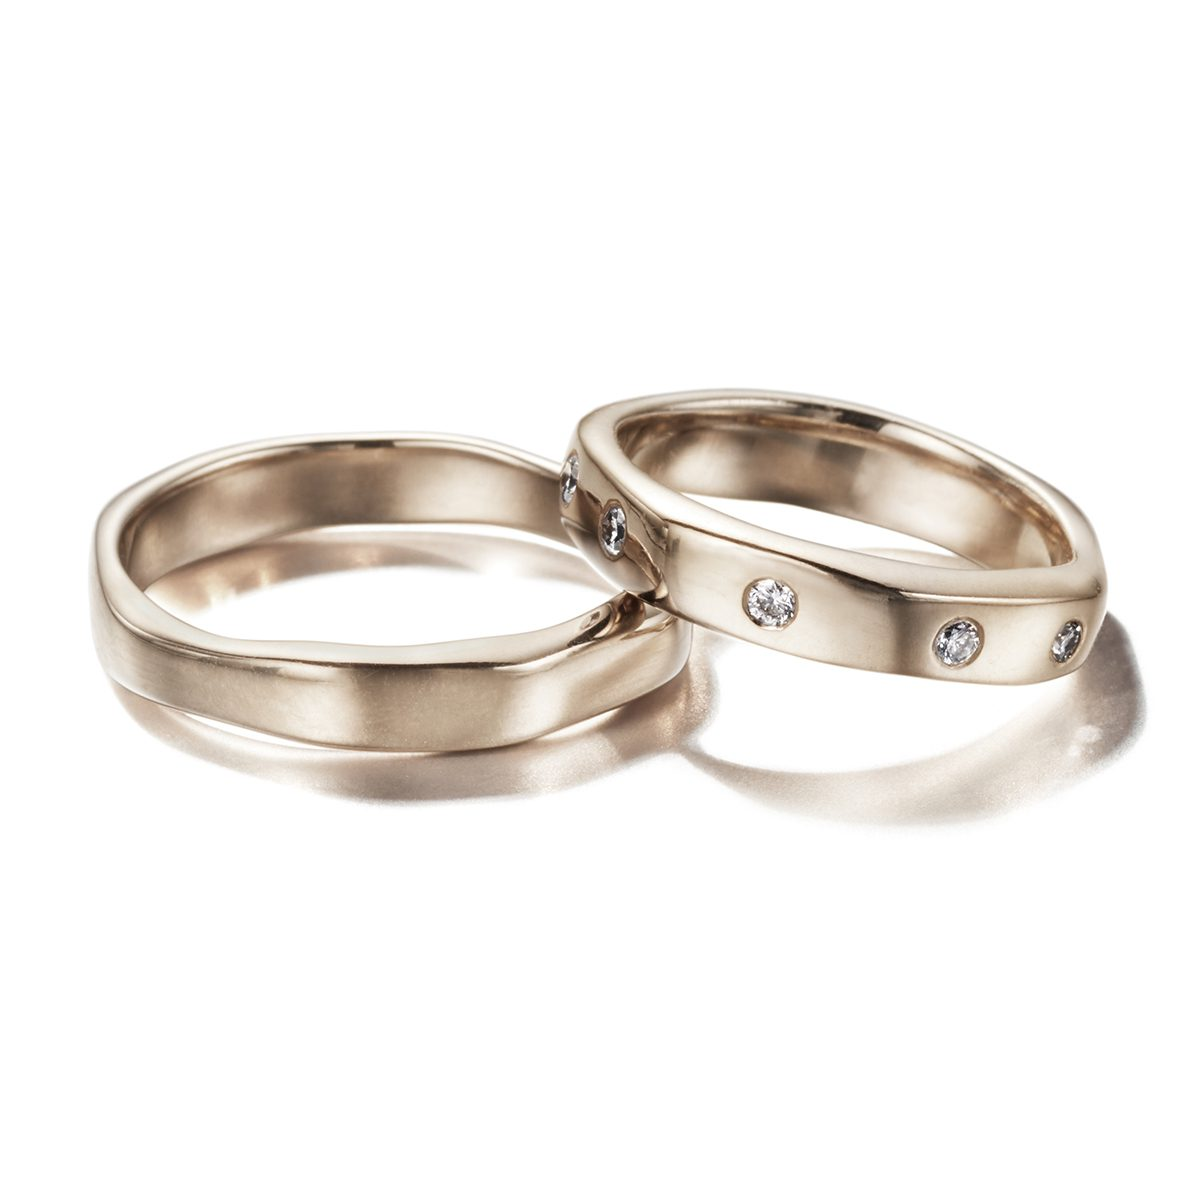 CORINNE HAMAK - Together Marriage Rings